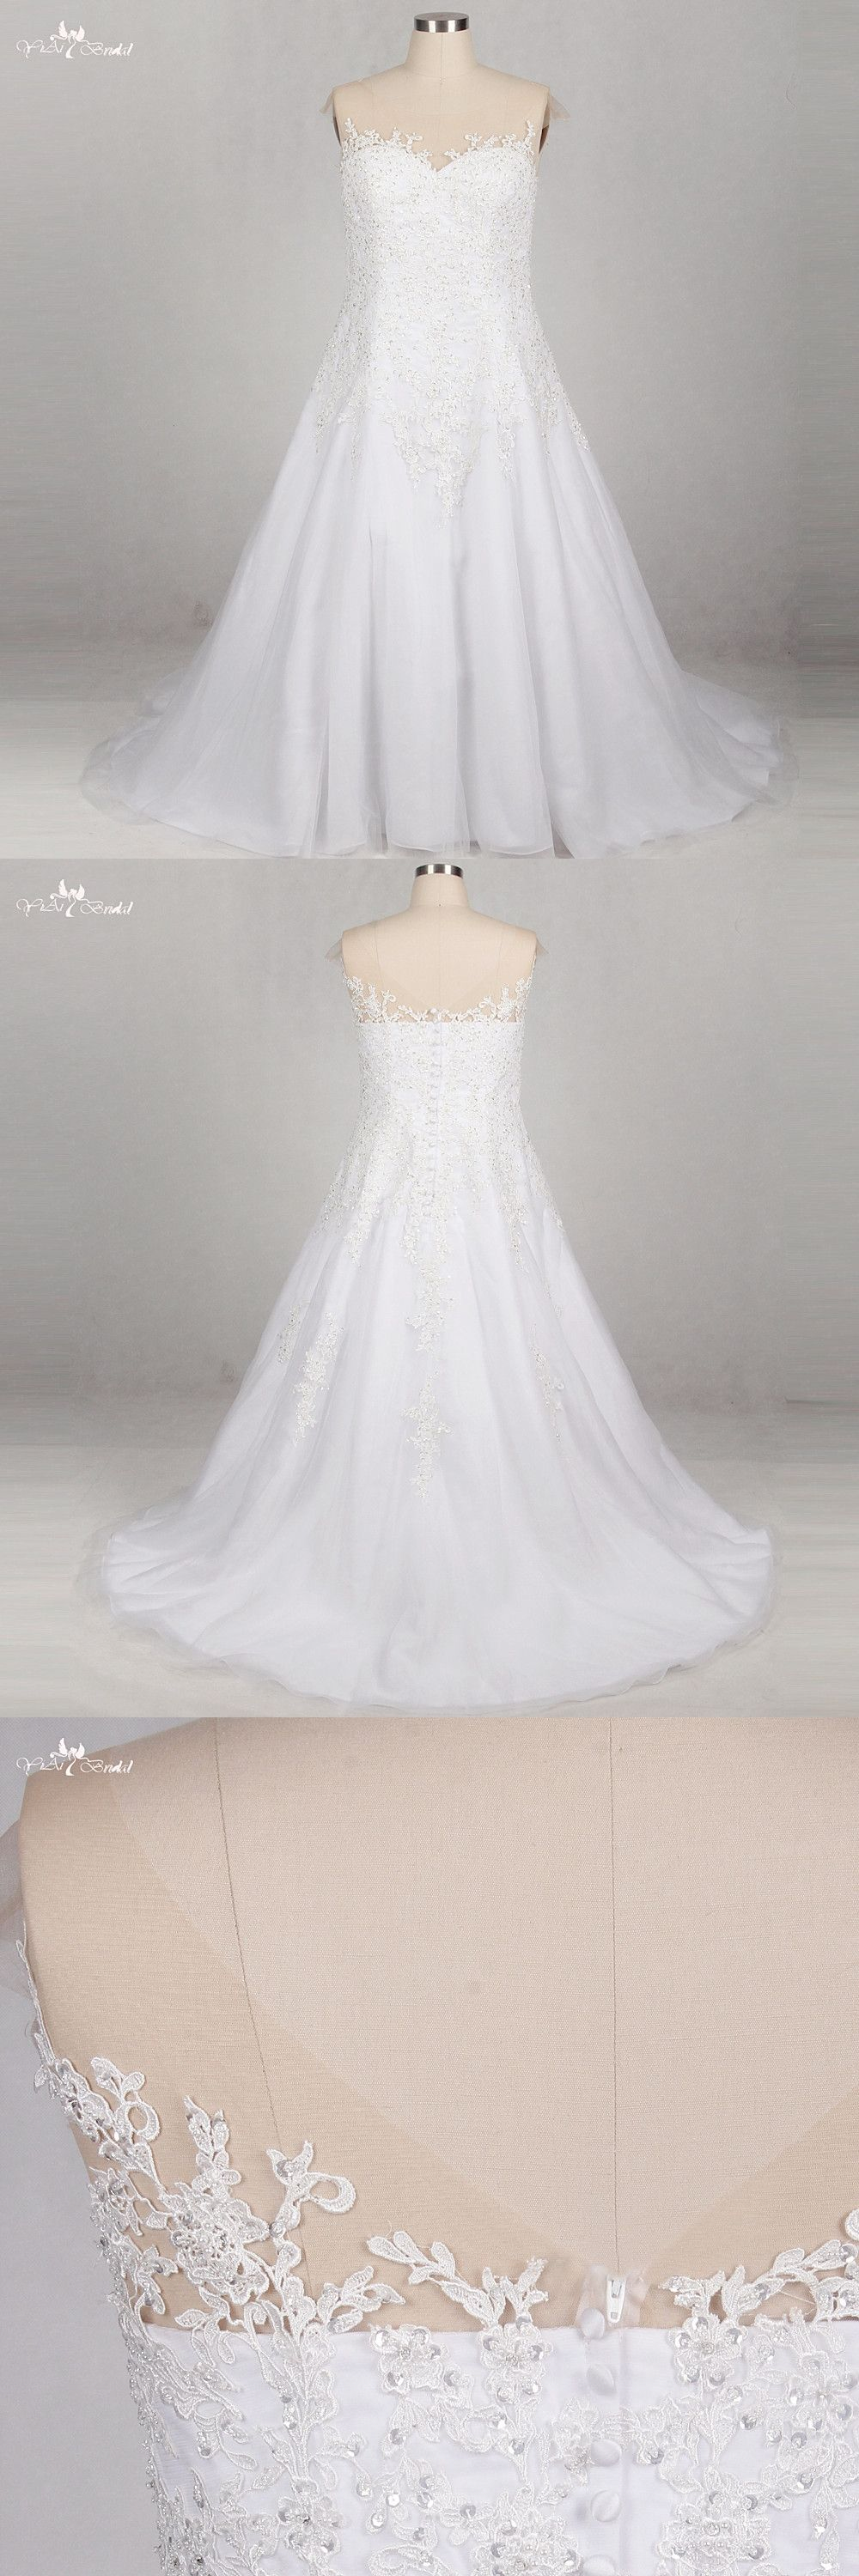 RSW1195 Real Pictures Yiaibridal Alibaba Retail Store Cheap-Wedding ...